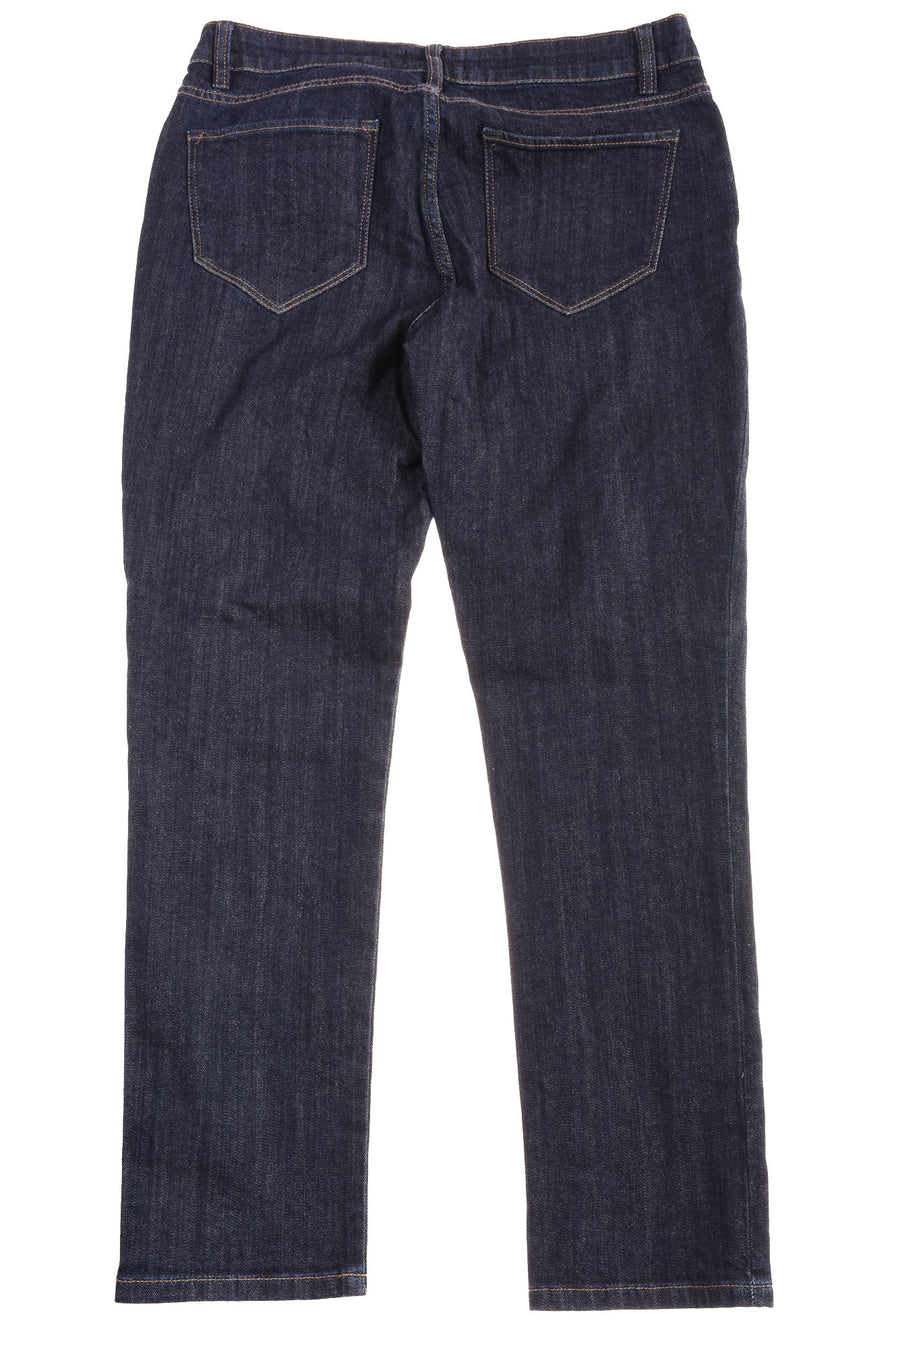 Women's Jeans By Liz Claiborne